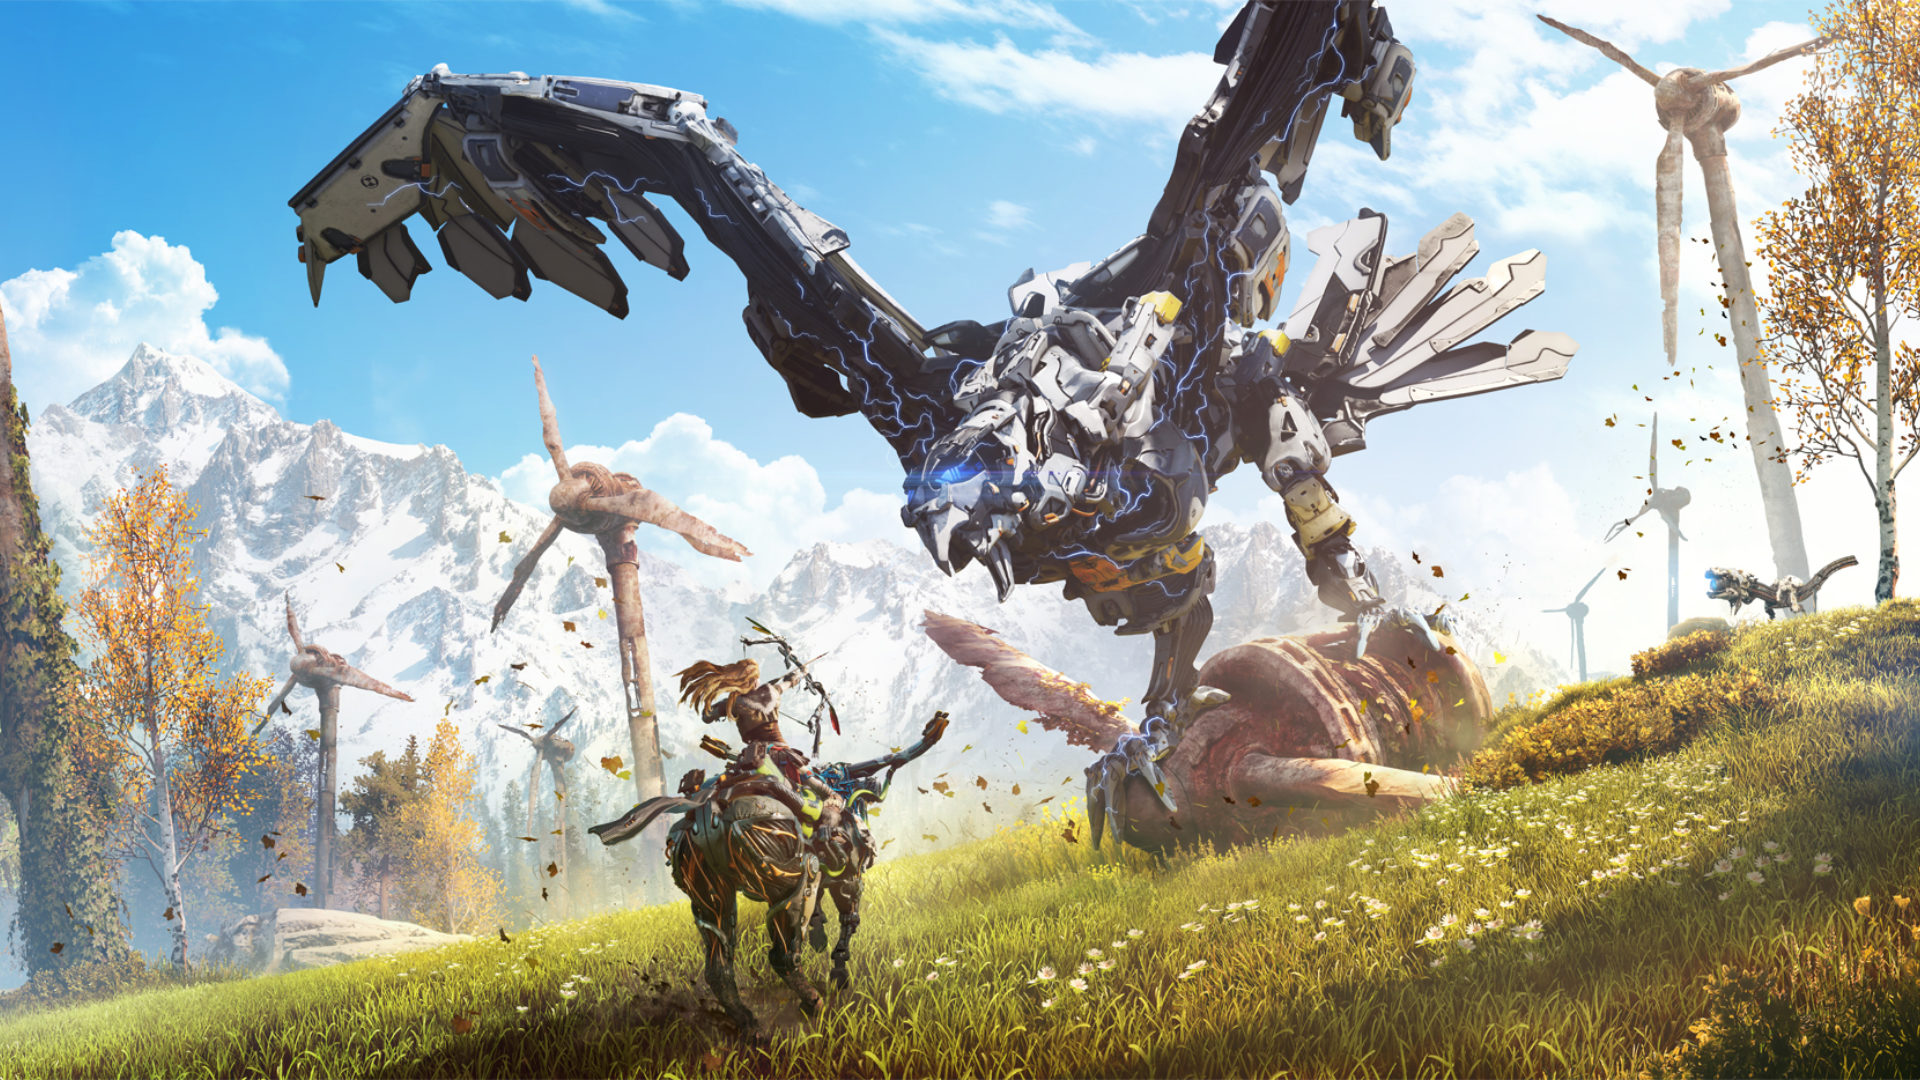 2016 horizon zero dawn hd games 4k wallpapers images - Horizon zero dawn android wallpaper ...